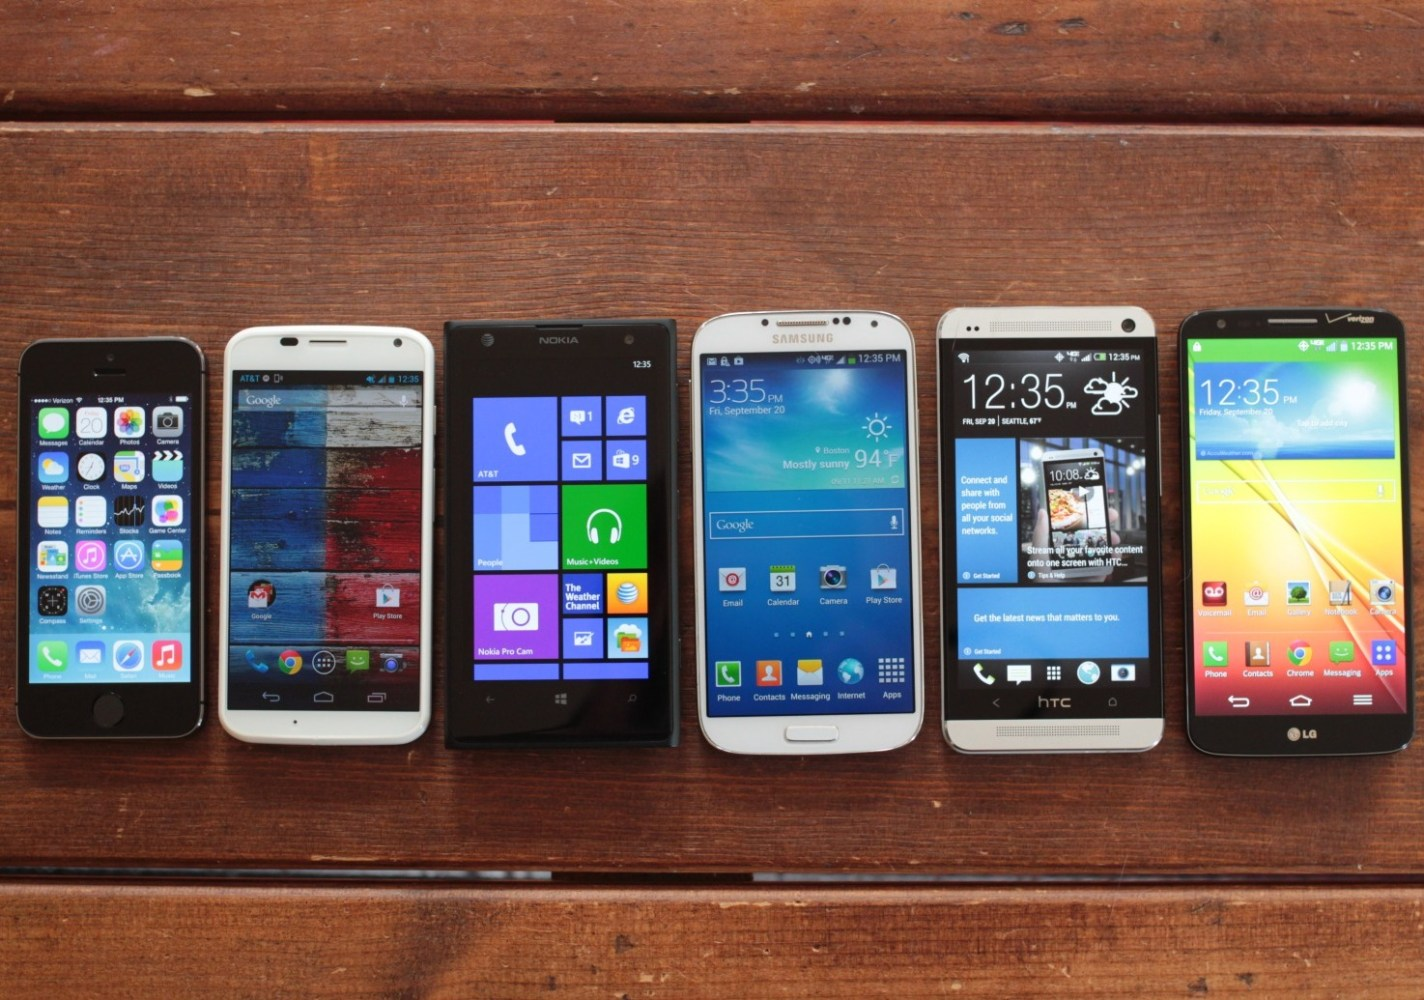 What's the best smartphone? The top models face off